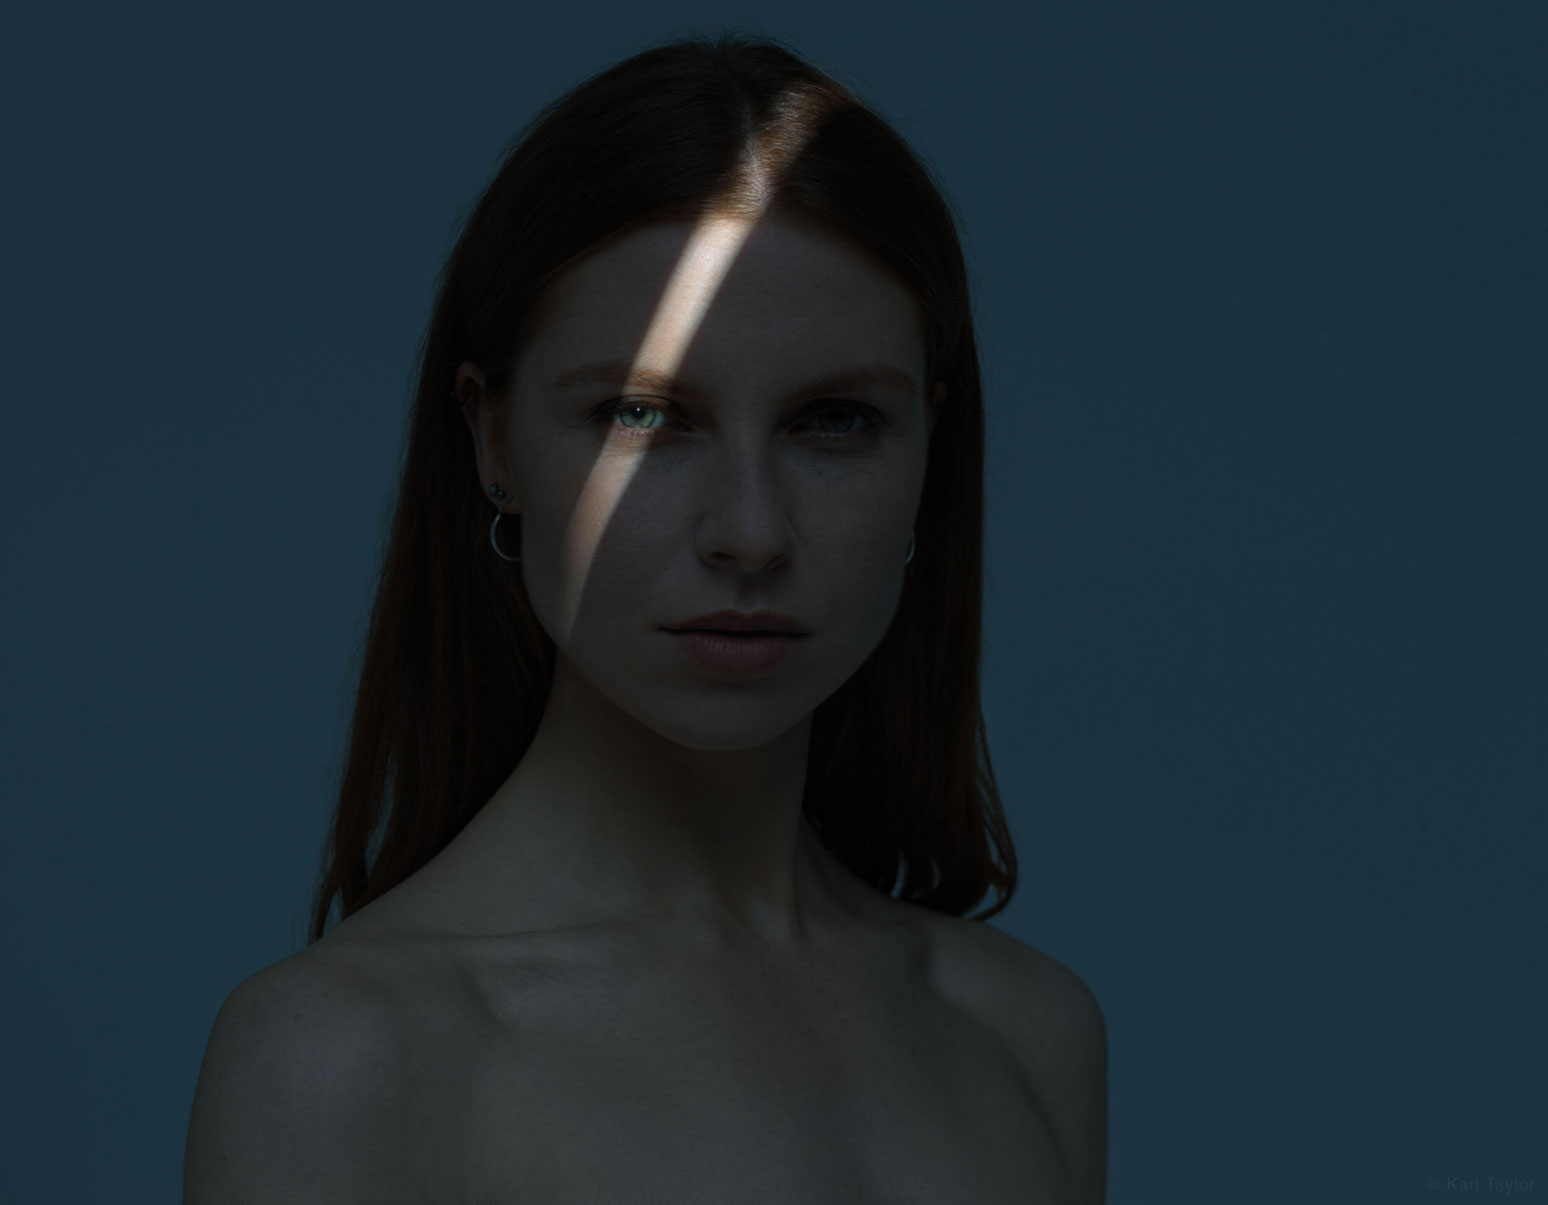 Butterfly lighting shadow photography portrait